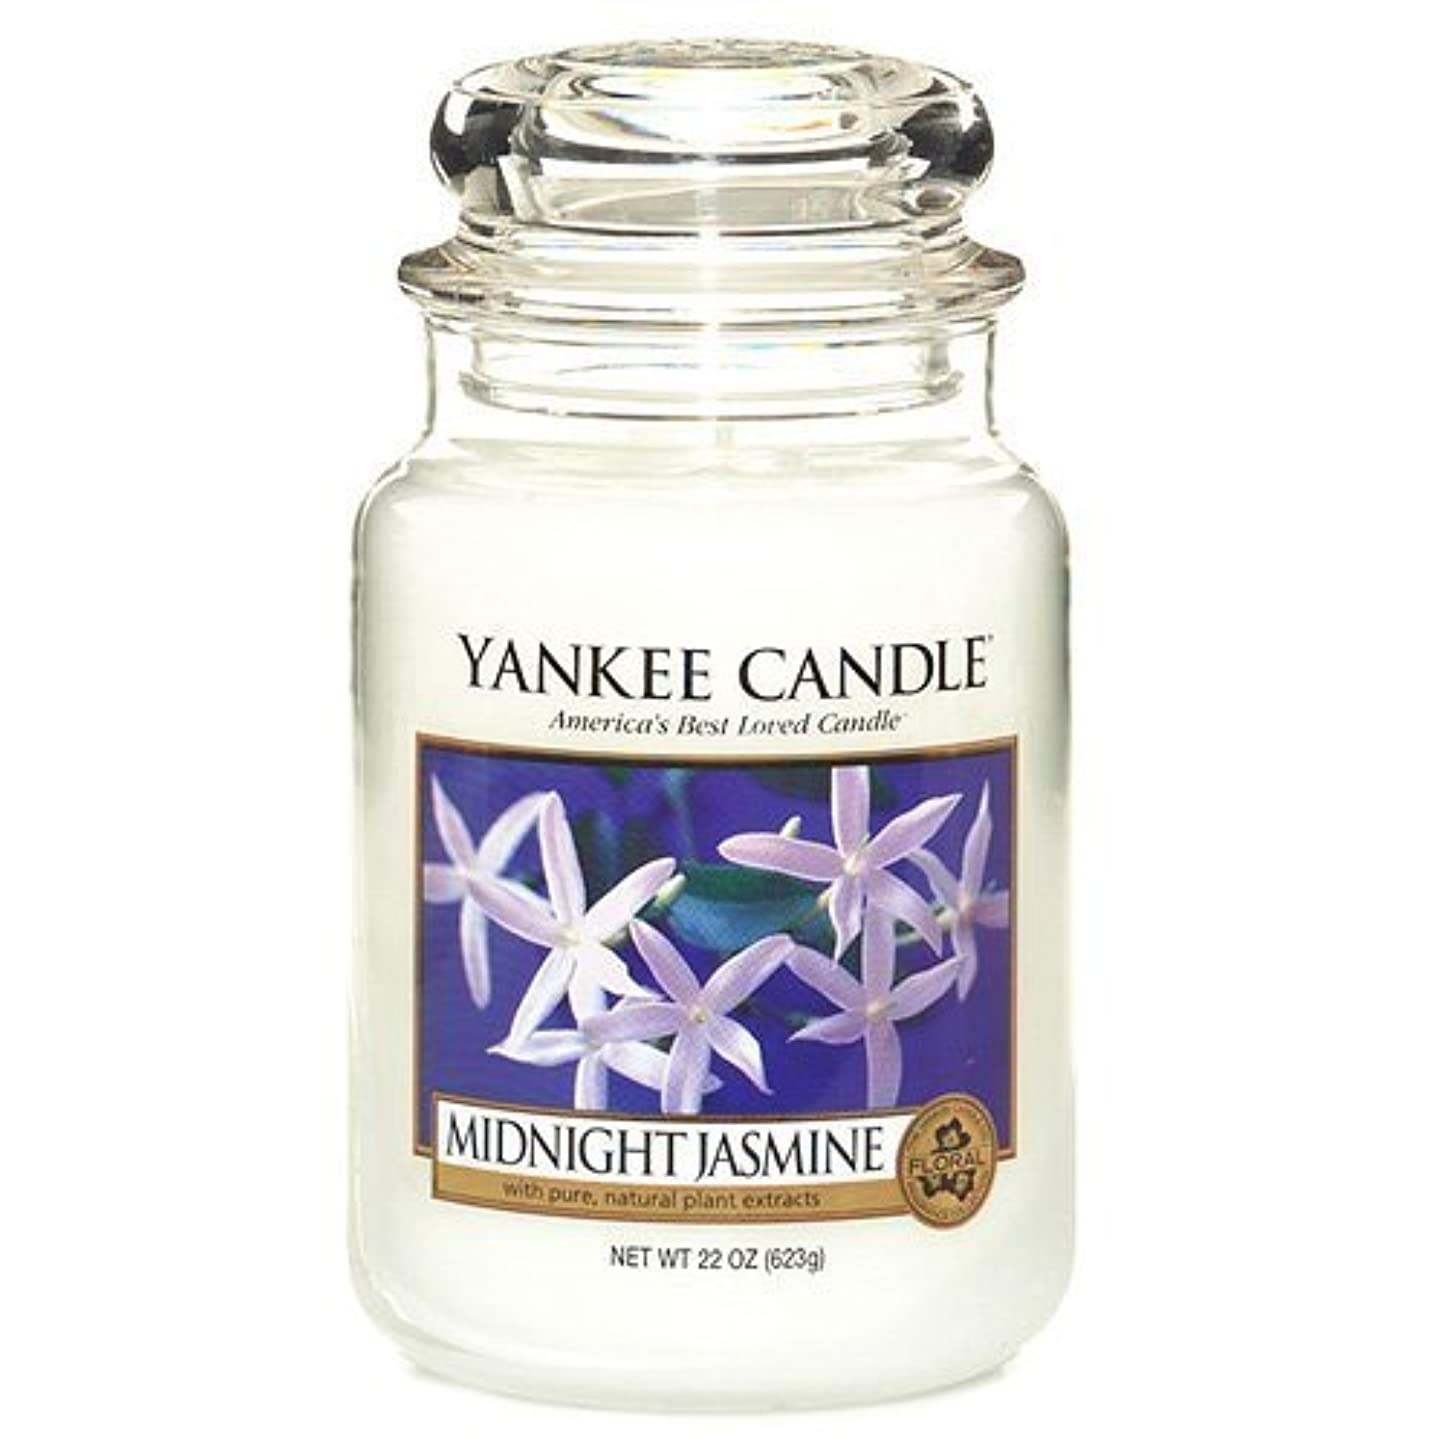 宇宙飛行士チーフ資本主義Yankee Candle Housewarmer Jar (Midnight Jasmine) - Large (22 oz) by Yankee Candle [並行輸入品]